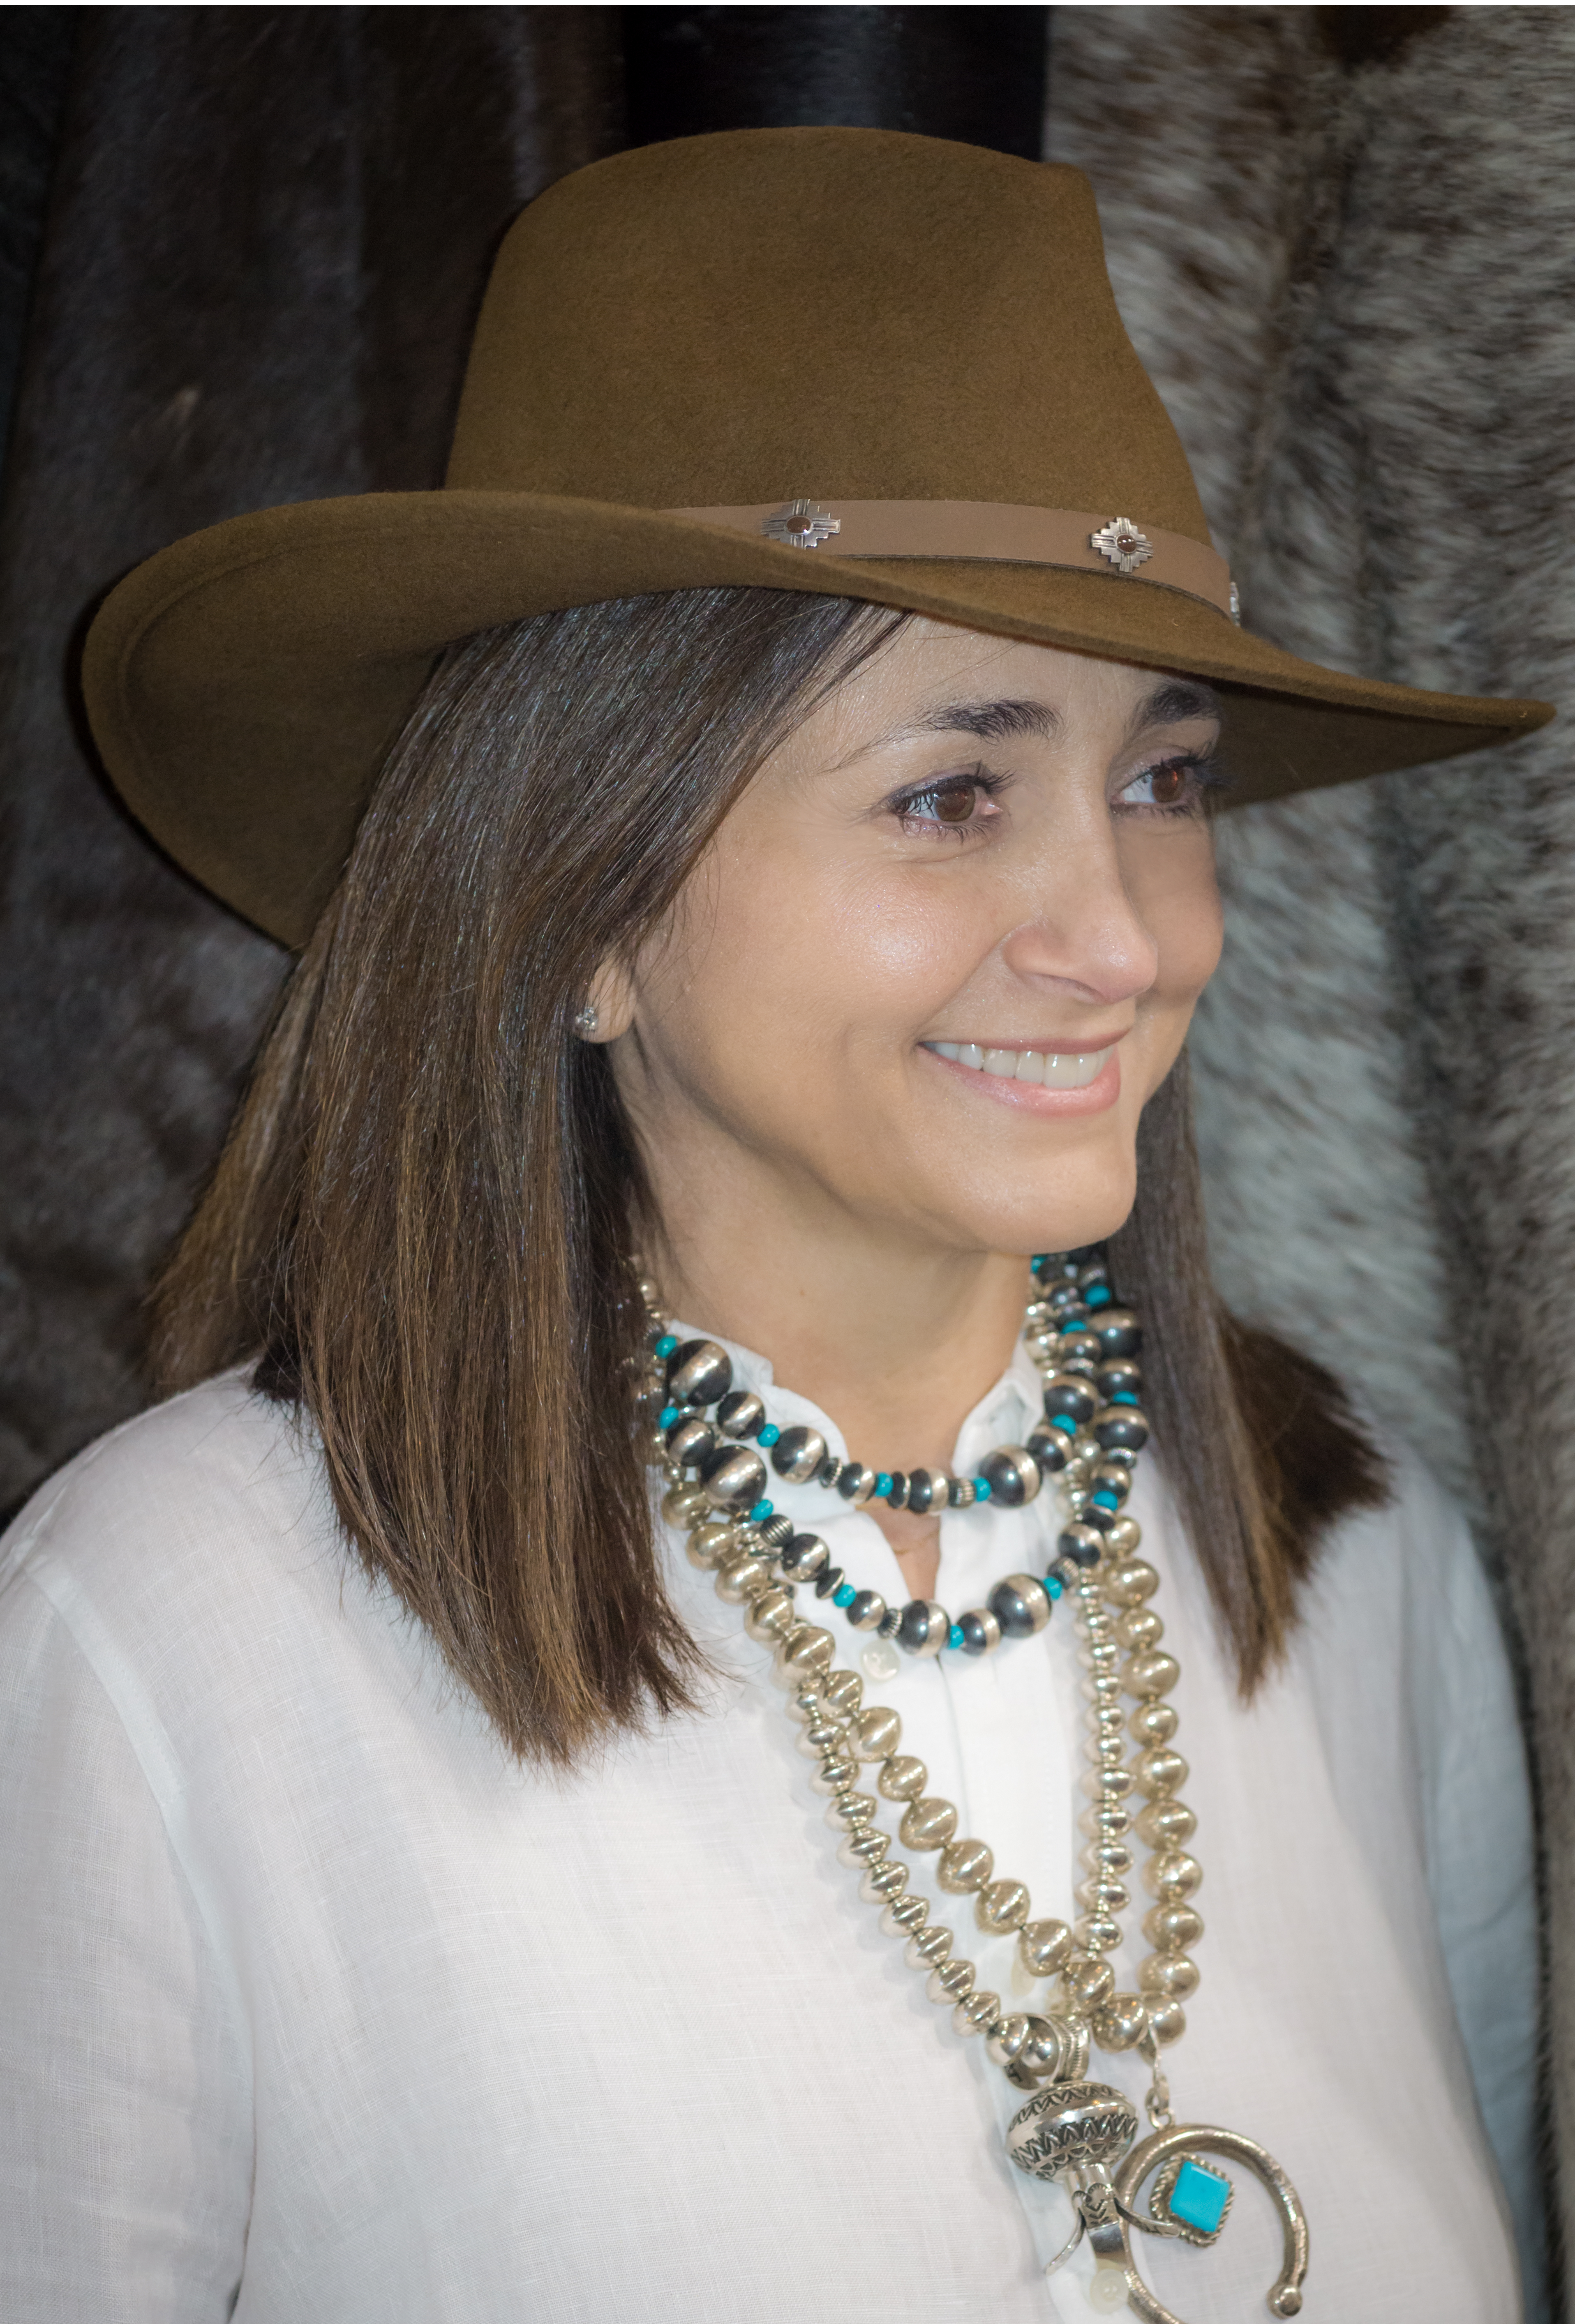 Wearing Naja pendant with turquoise and Navajo pearls